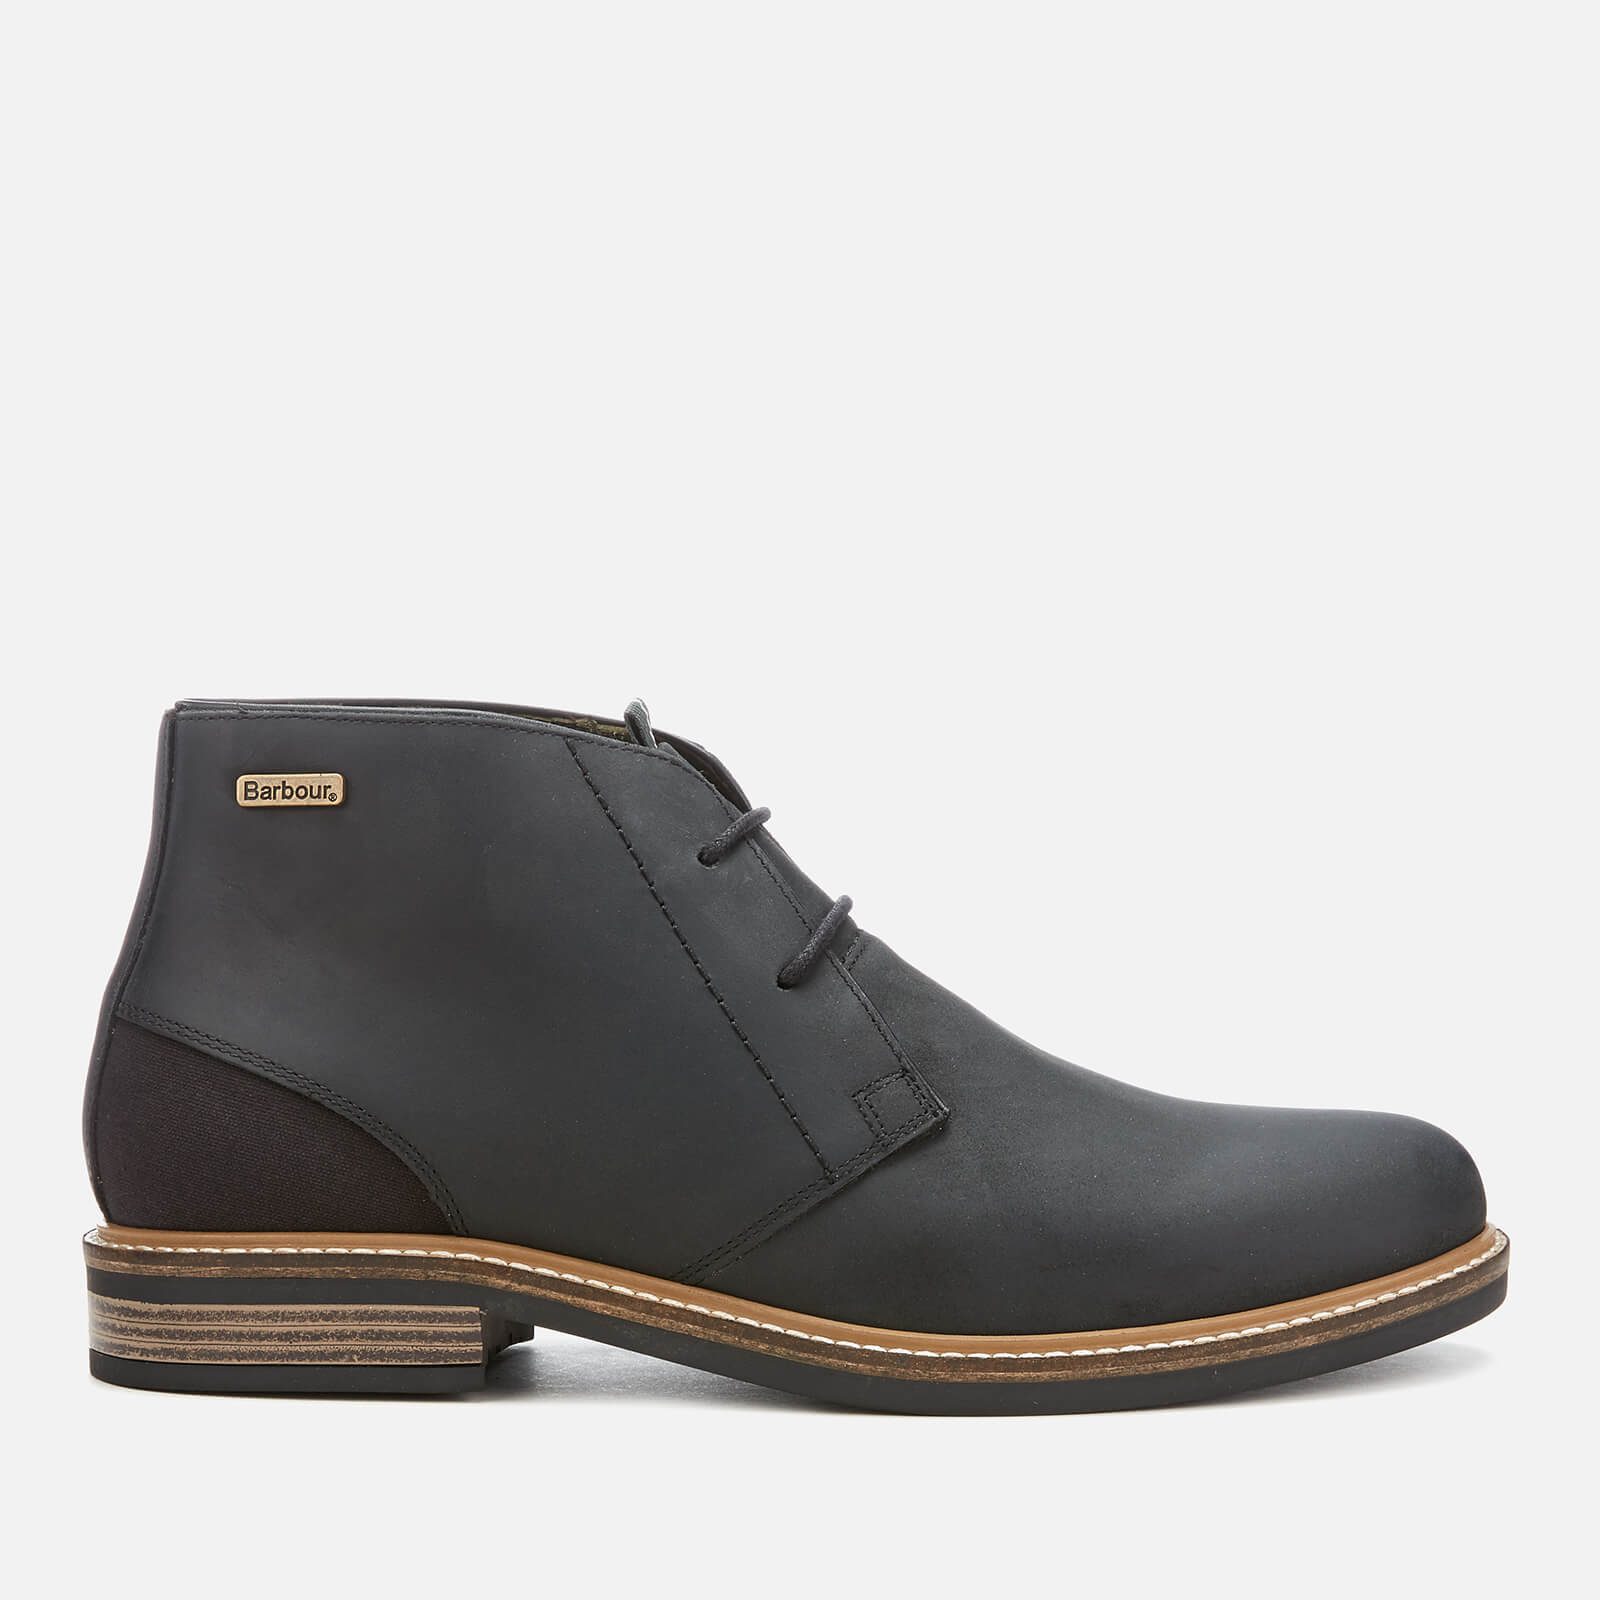 Click to view product details and reviews for Barbour Mens Readhead Leather Chukka Boots Black Uk 10.